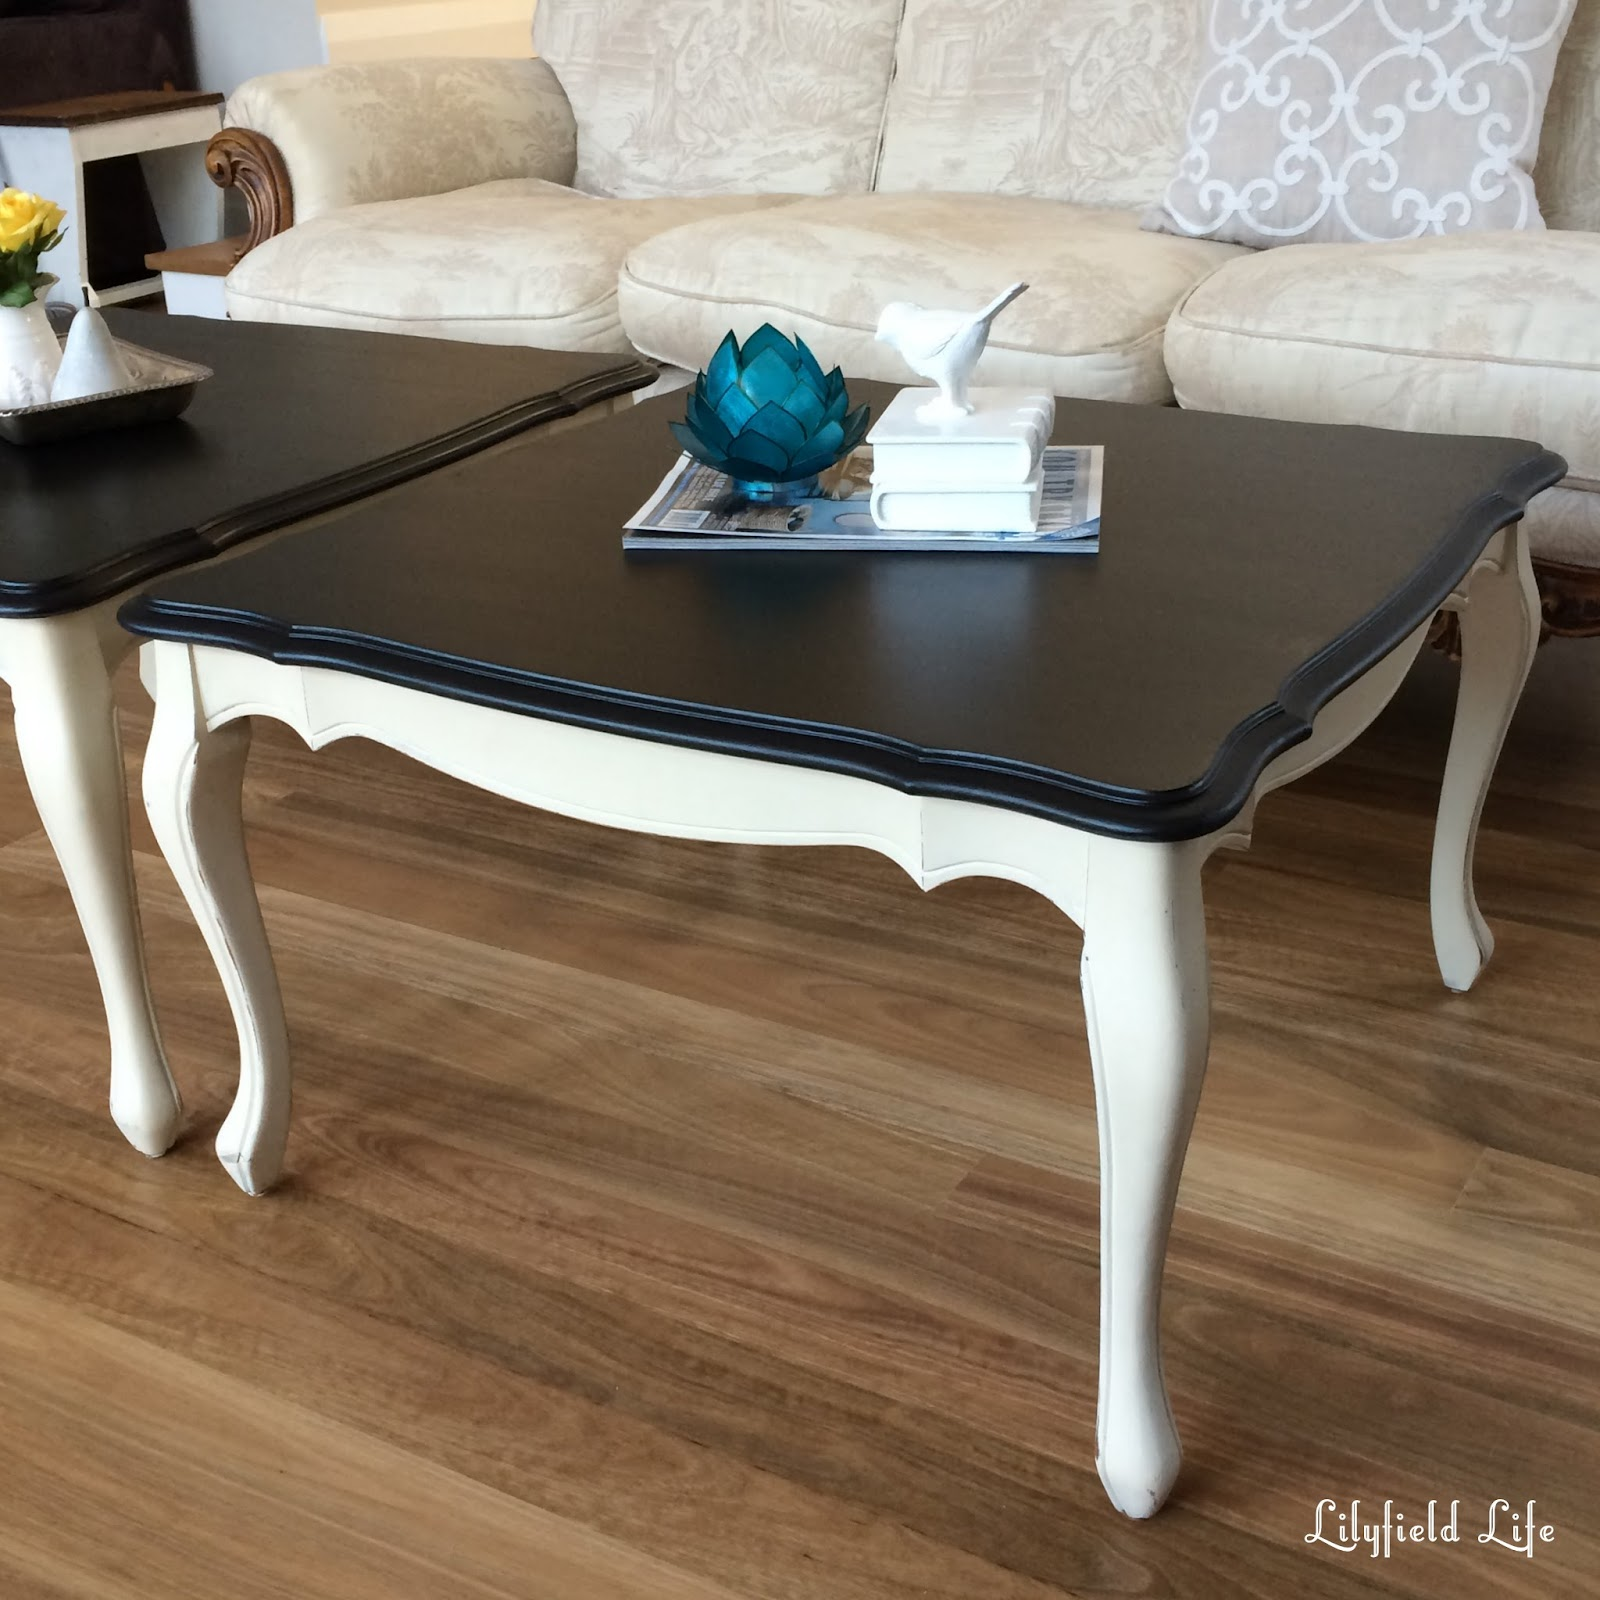 Lilyfield Life: A Pair Of French Style Coffee Tables